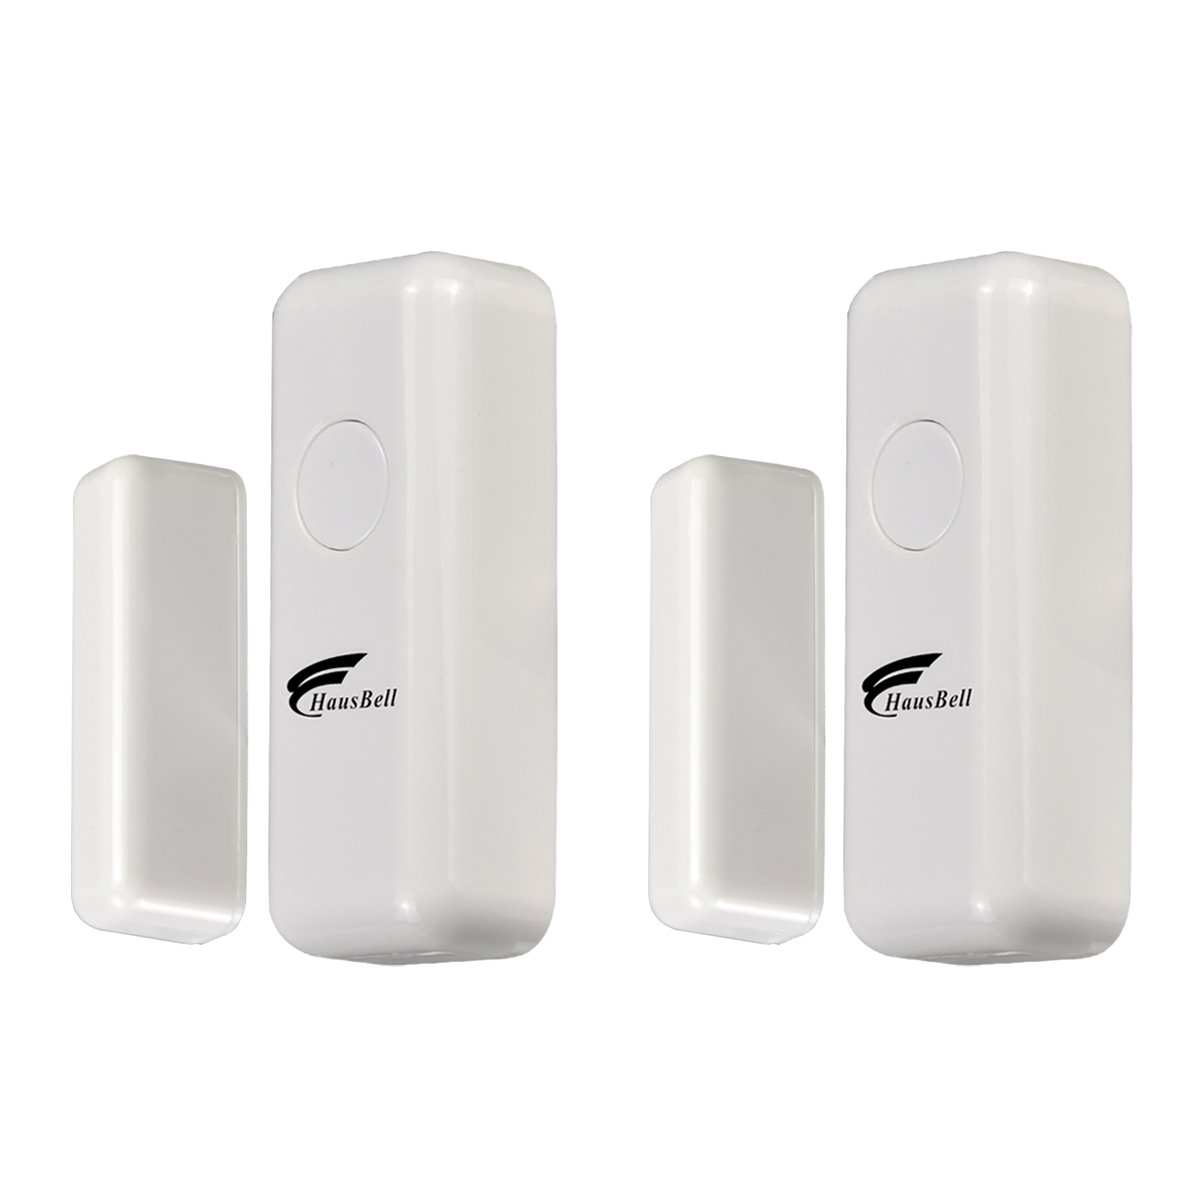 HAUSBELL Alarm System 2 Pack Contact Sensor,Home Security System,3G & WiFi 2in1 Wireless Smart GSM Security Alarm,only 2 Pack Contact Sensor